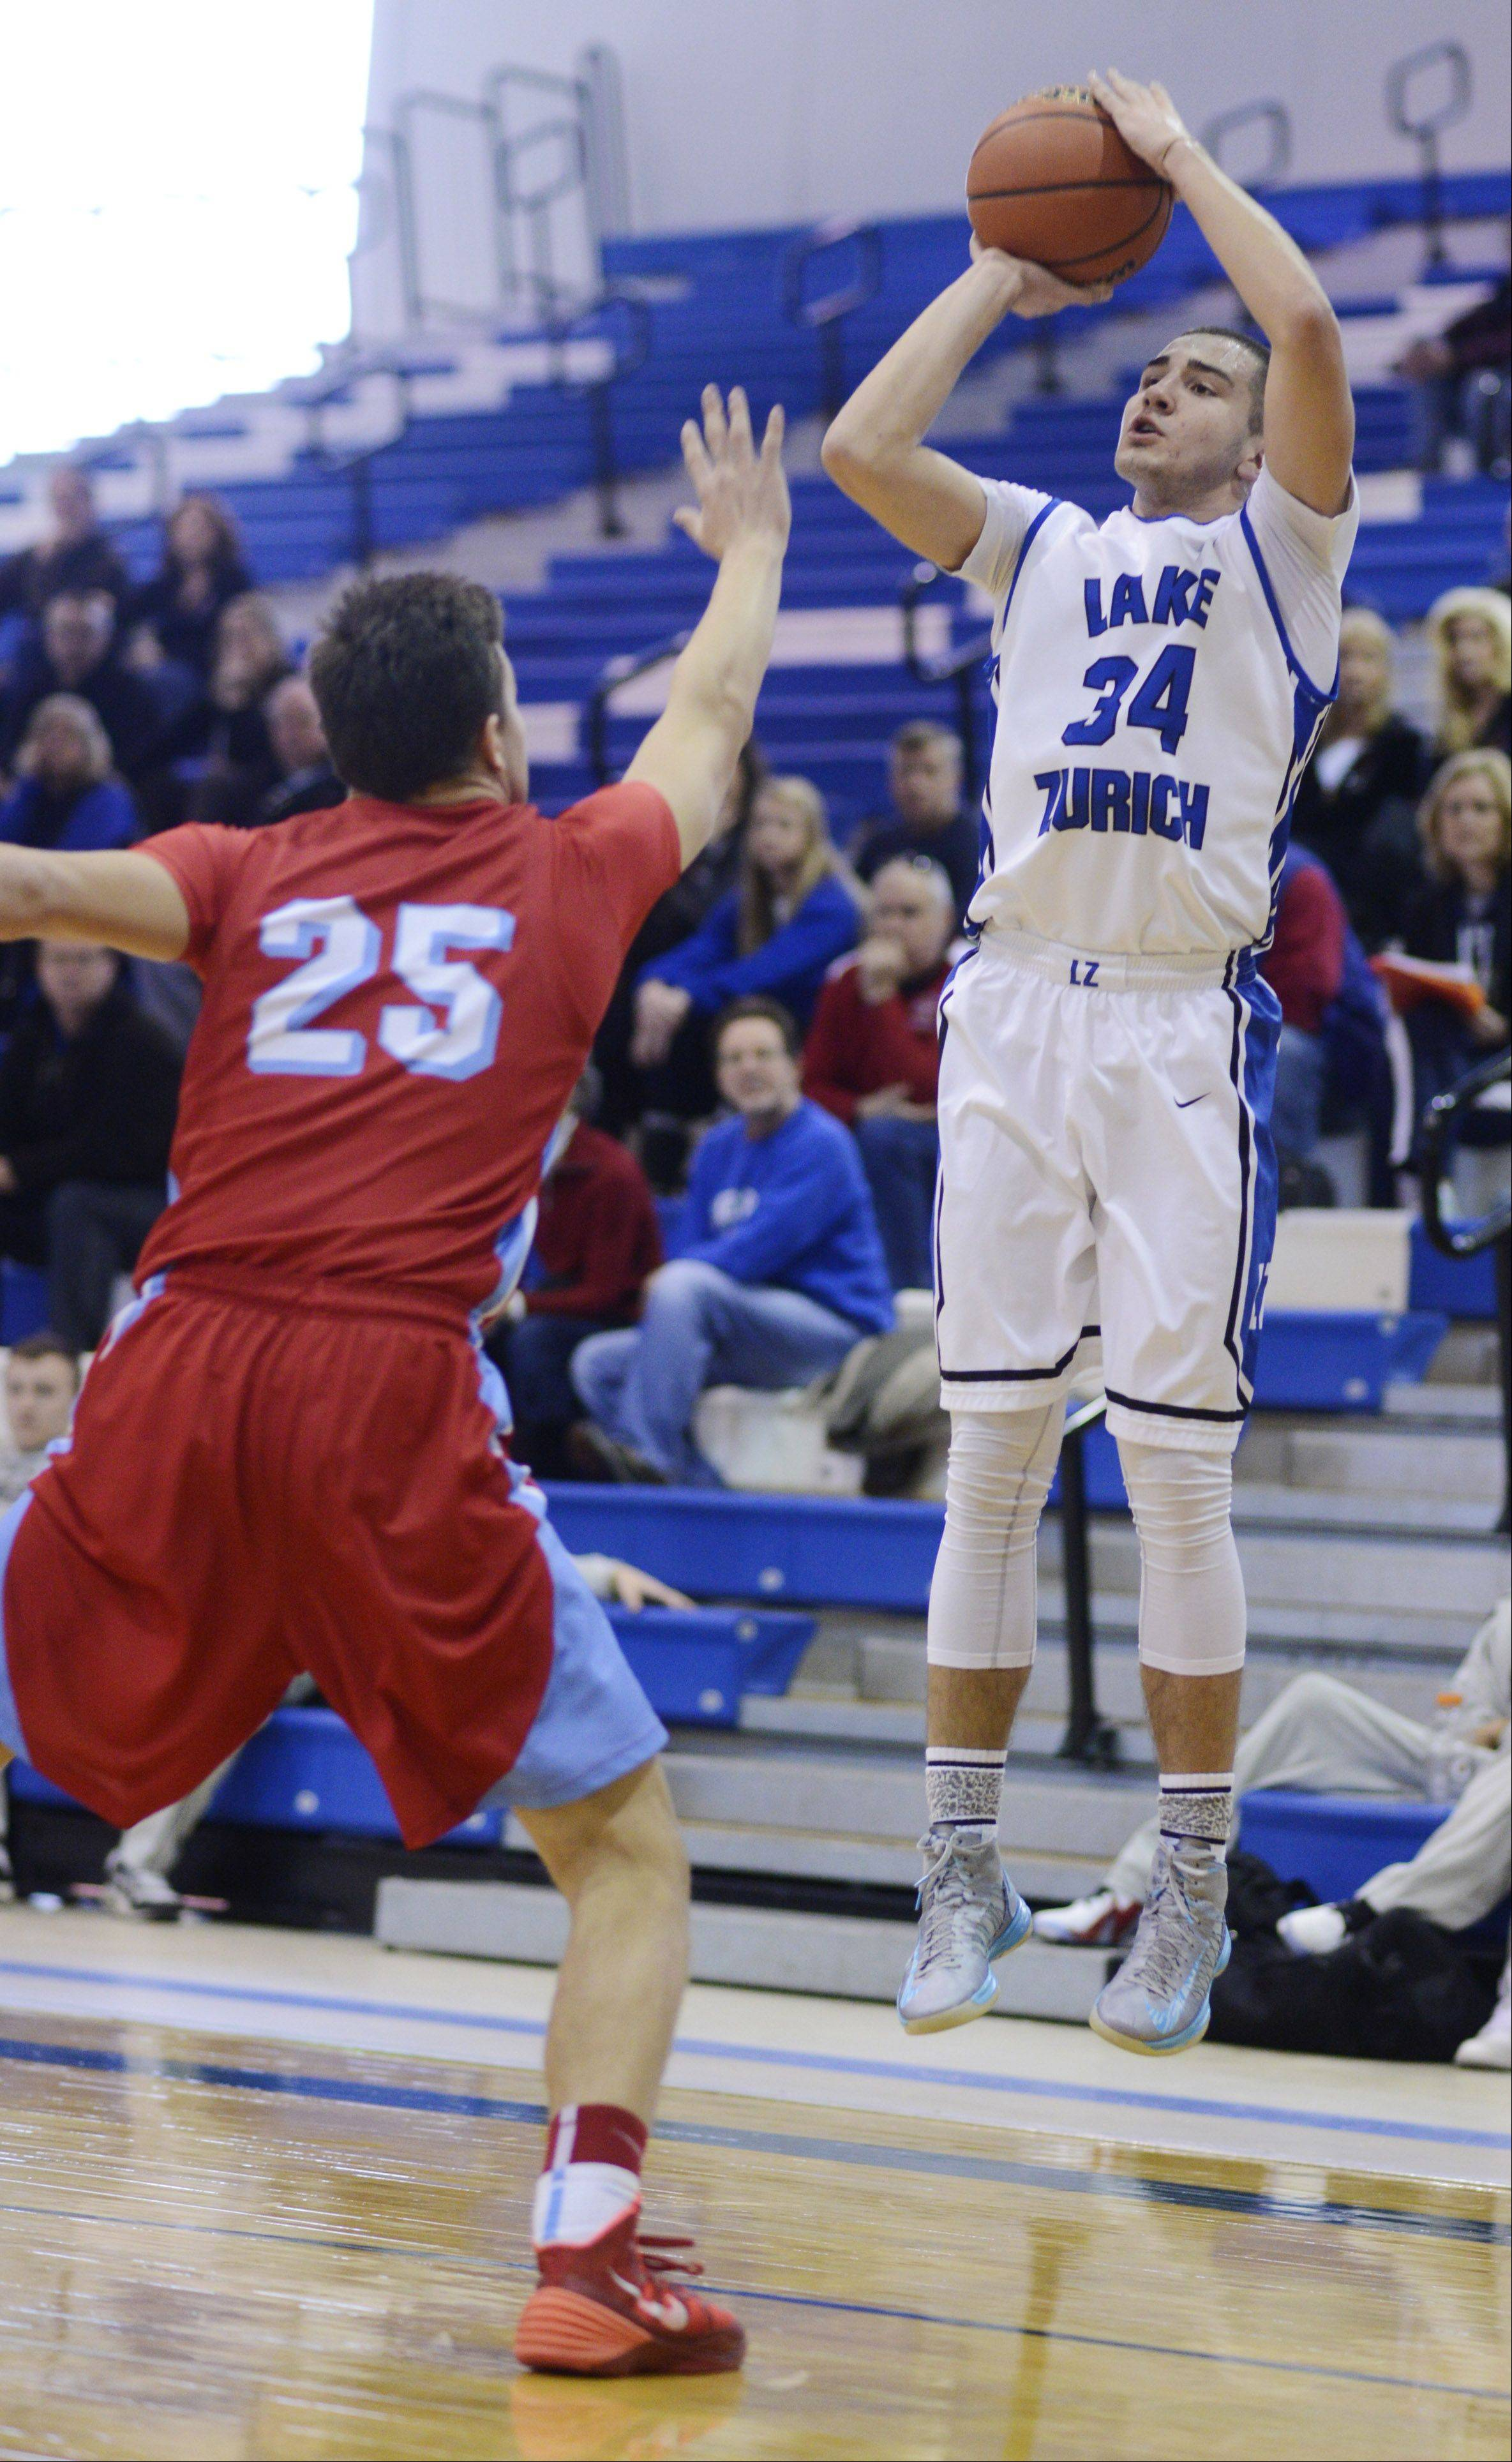 Lake Zurich's Mike Travlos, right, shoots a jump shot in front of Marian Central defender Nate Patterson during the Martin Luther King Classic at Lake Zurich Saturday.